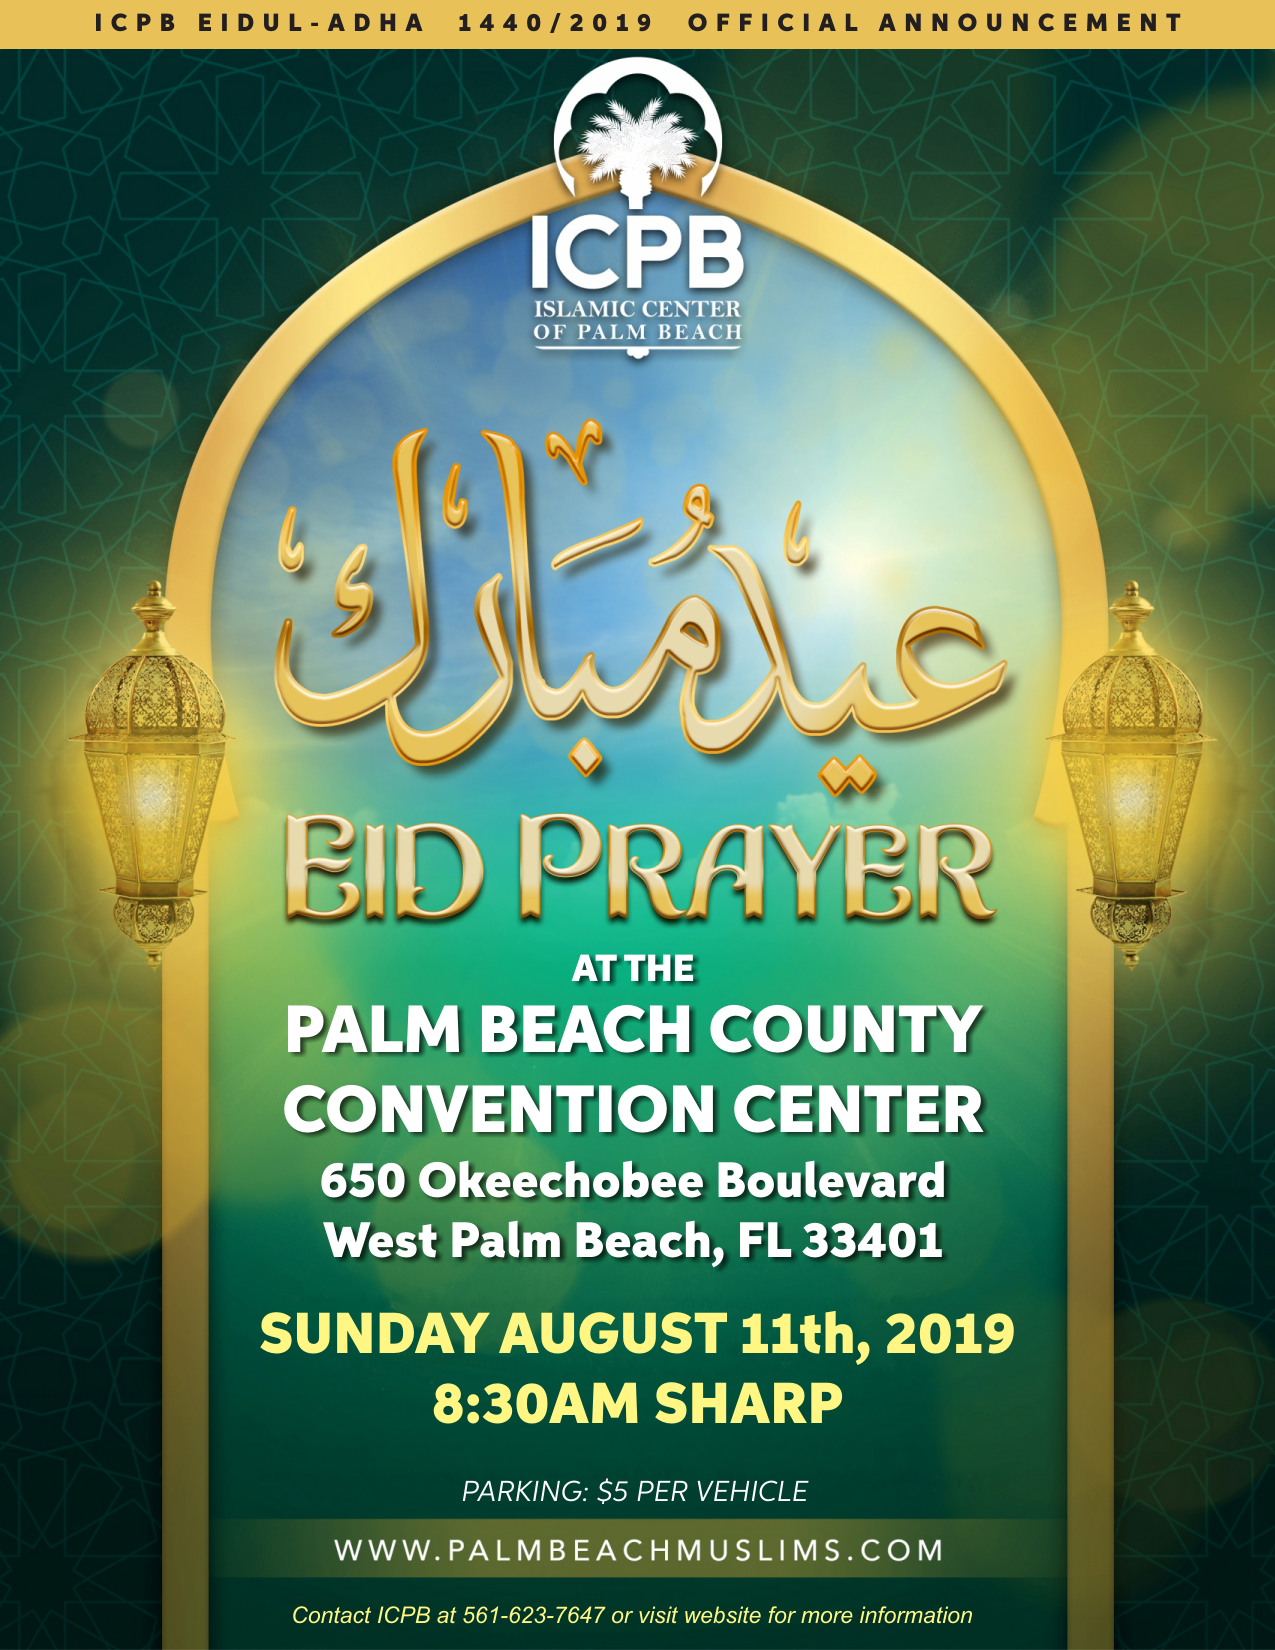 ICPB Eidul Adhaa 1440 2019 Official Announcement